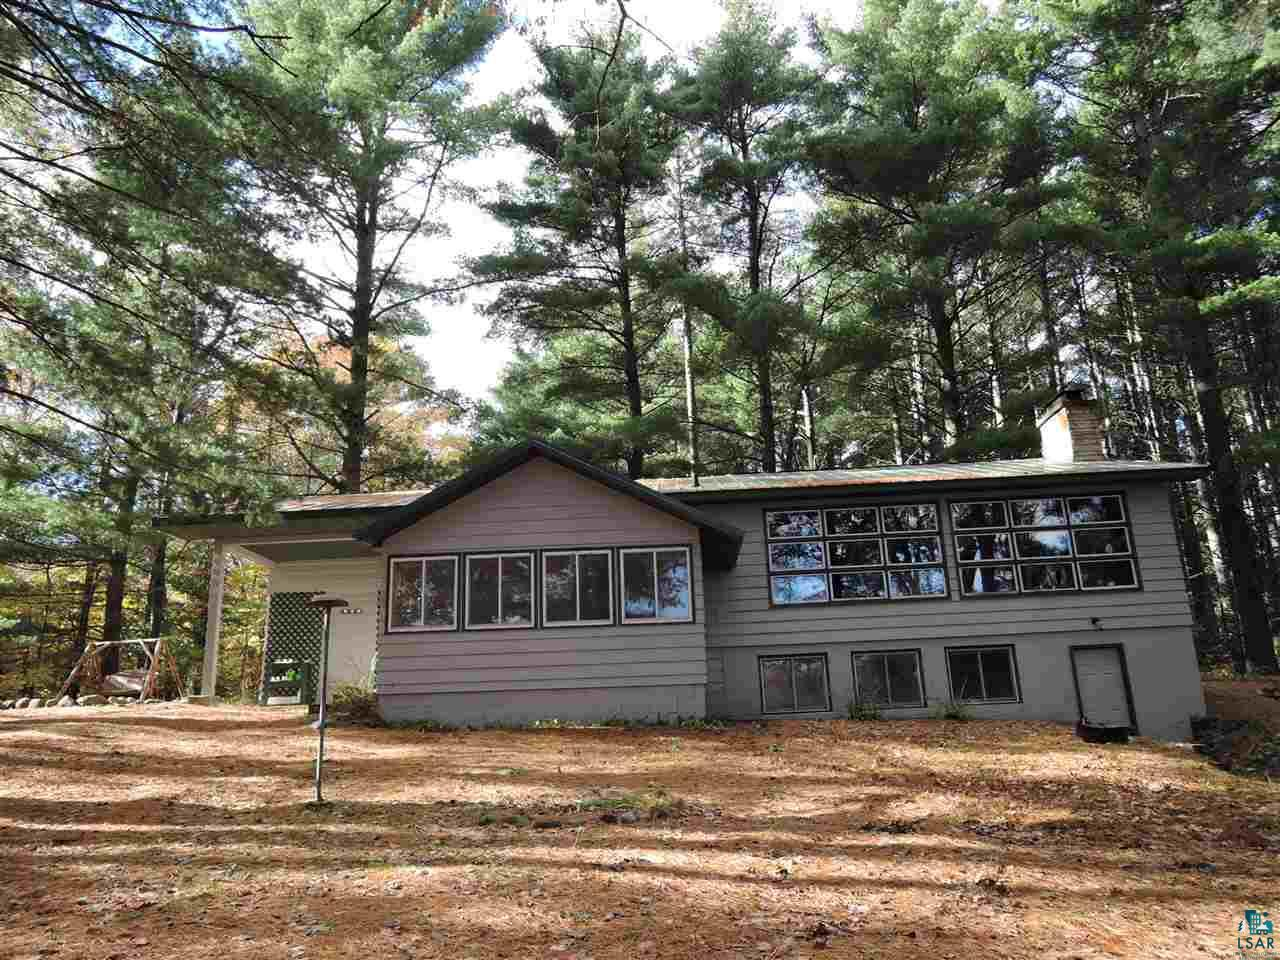 Spacious private year-round or weekend get-away three beds, two baths home on a dead-end road, nestled around towering mature white pine, maple, and oak trees that overlooks 175' waterfrontageof crystal clear & sandy bottom from Muskellunge Lake. Easy access to the Pike Chain of Lakes just one mile down the road to launch your boats, kayaks, or canoes. This lake has a wide variety of Bluegill, Crappies, Bass, Walleye, and of course, Musky fish!  Large sunny updated remodeled kitchen, and lakeside beautiful dining room with tongue & groove ceiling and walls, the perfect place to relax and enjoy the sunrise views and sparkling waters of Musky Lake.  Large living room with natural lighting from tall windows, beamed ceilings, and a stone fireplace. On the lower level, large family room with a beautiful brick wood fireplace and great views from large windows enjoying views of the lake and all kinds of nature, deer, turkeys, and turtles.  A large bonus room for an office or could be a third bedroom without an egress window.  Laundry/Utility room with tons of storage, a second bathroom, and a sauna room with a shower and more storage room.  The brand new, updated full bath near the master bedroom in 2018. New 50 year metal roof installed in 1999. Large mudroom entry with a large deep closet screened-in porch, and a fire pit area to sit around and have great conversations with family and friends.  Two cars detached garage with power and lots of storage room. Updated 200 amp service and new metal roof in 1999, new water heater and boiler system/furnace 2017.  Both bathrooms updated, main floor full bathroom in 2018 and the second bathroom lower level in 2019. Excellent internet service with high-speed fiber optic internet, home landline phone,  premium channels from Norvado. Close to thousands of acres of public land, Chequamegon National Forest, and easy access to the Tri-County Corridor to designated snowmobiling and ATV trails cross country skiing or hiking. Located in th